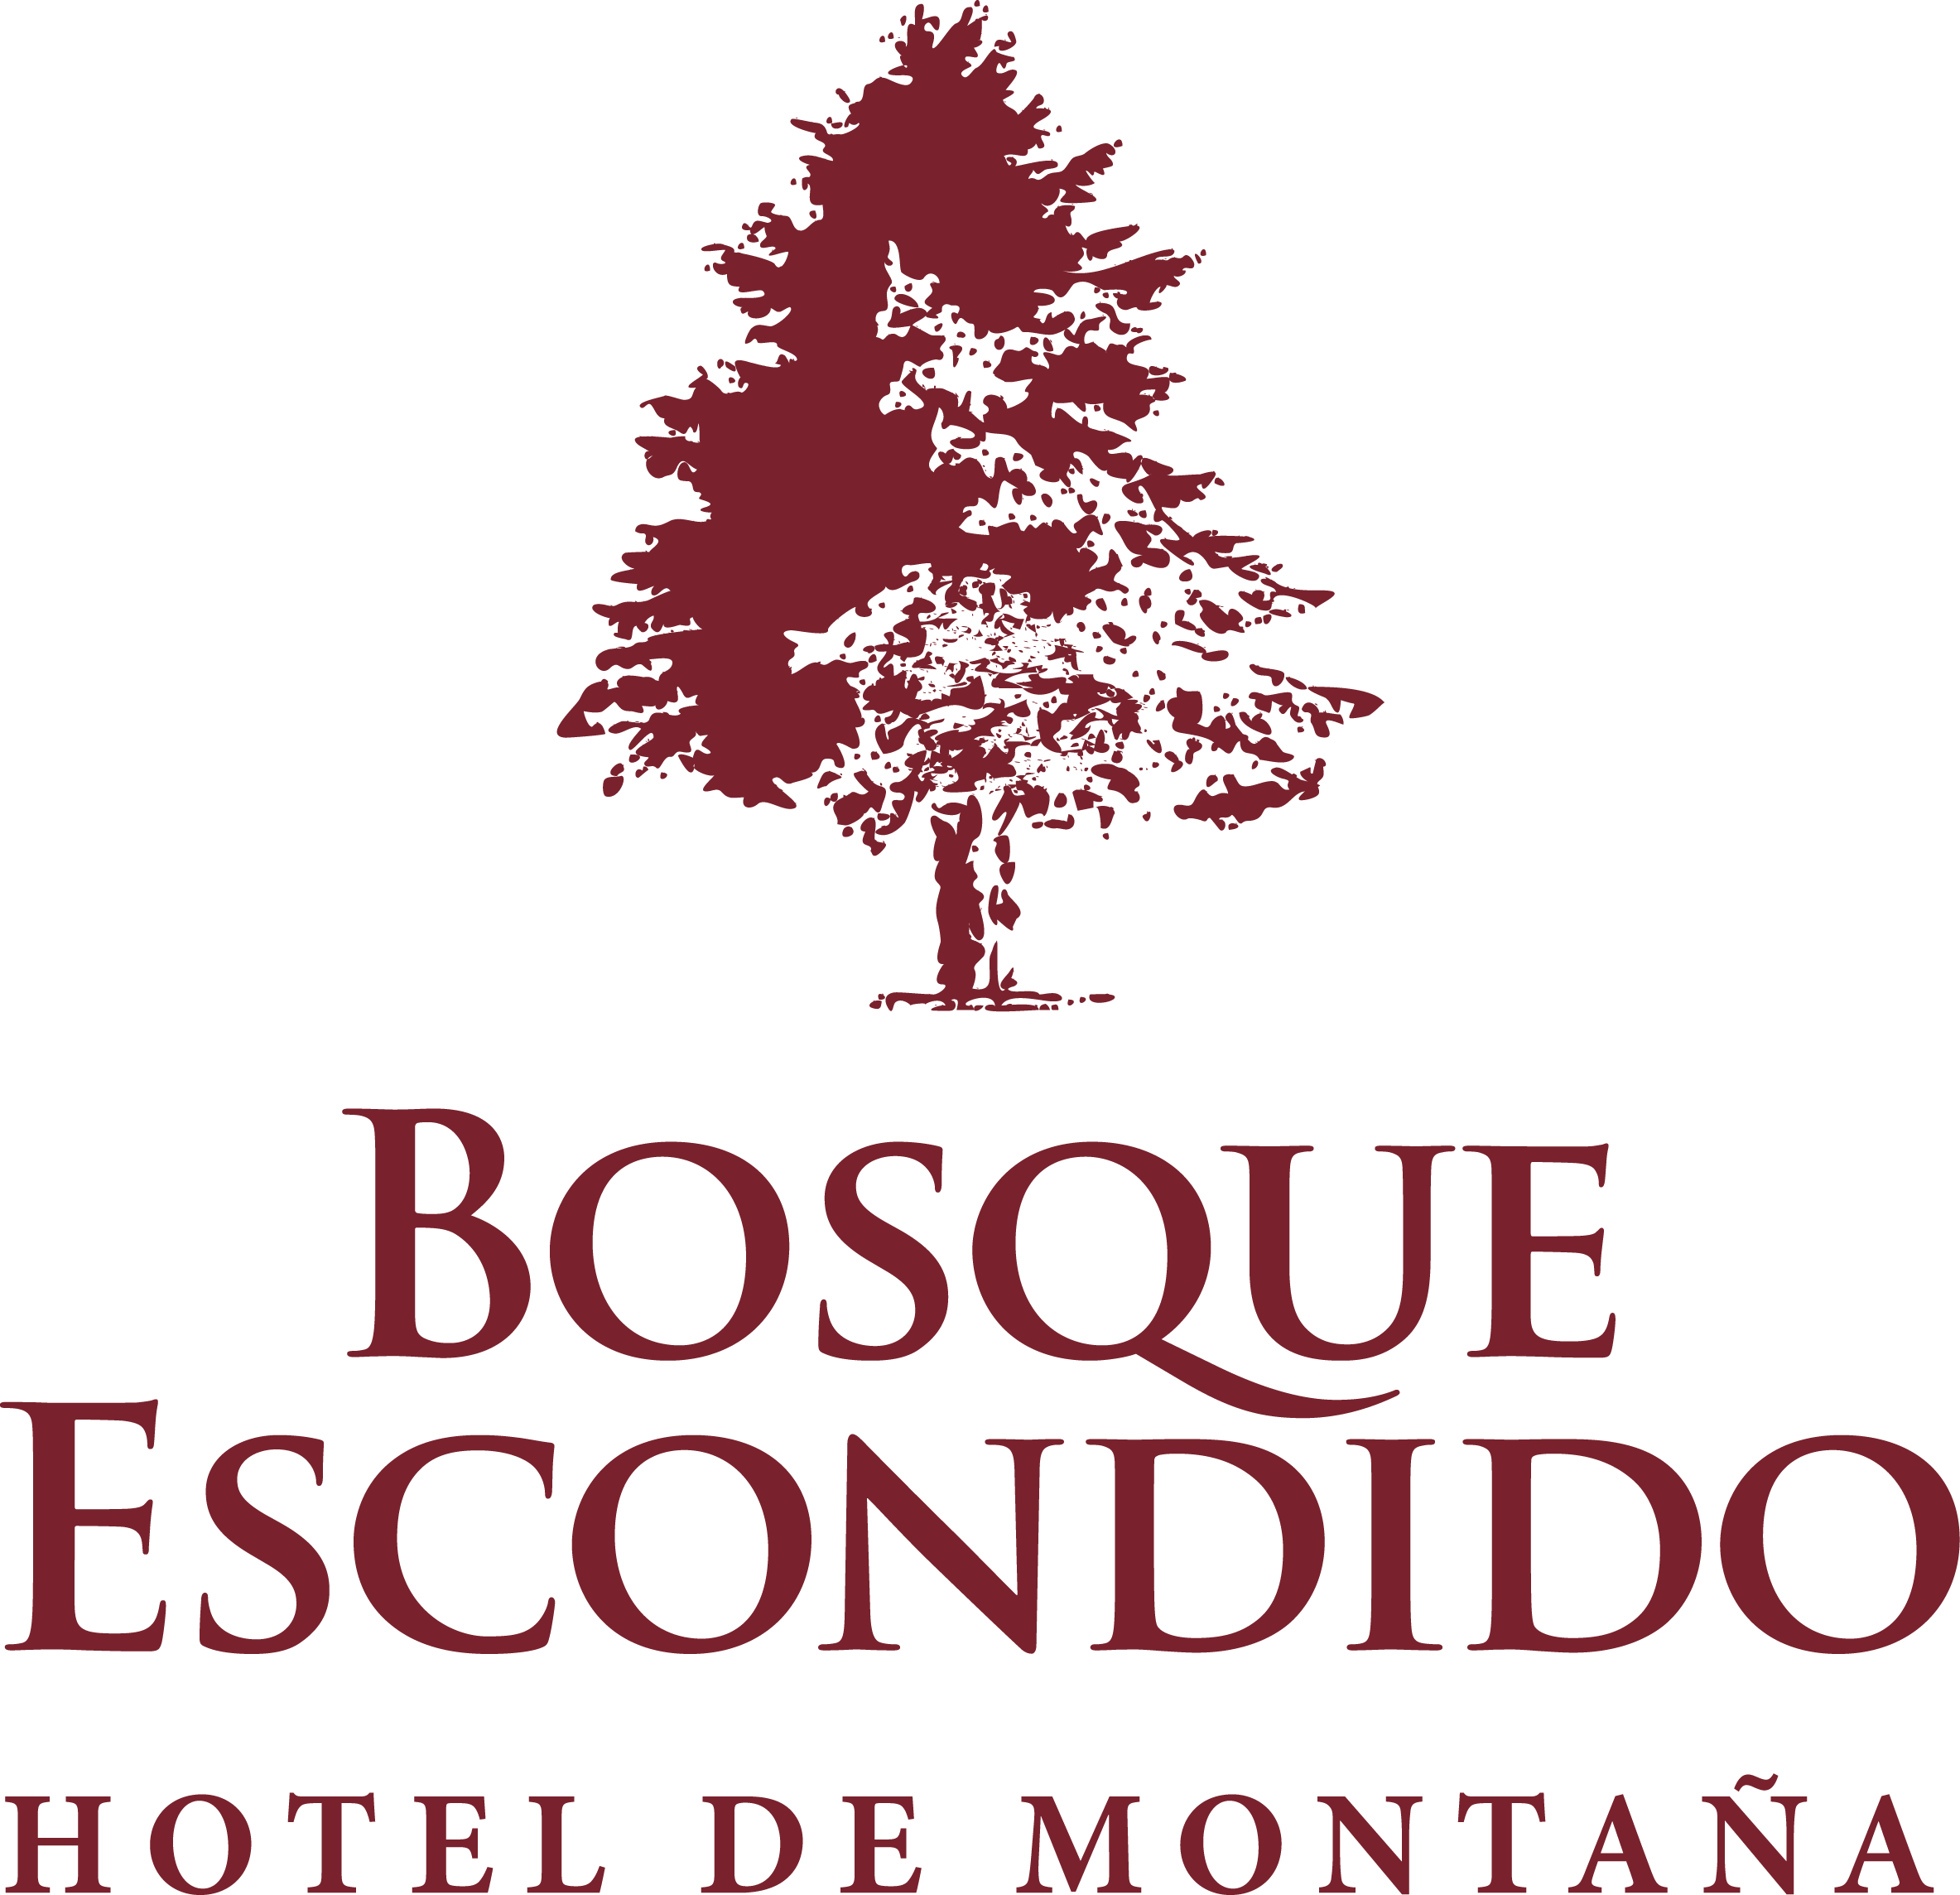 Hotel Bosque Escondido